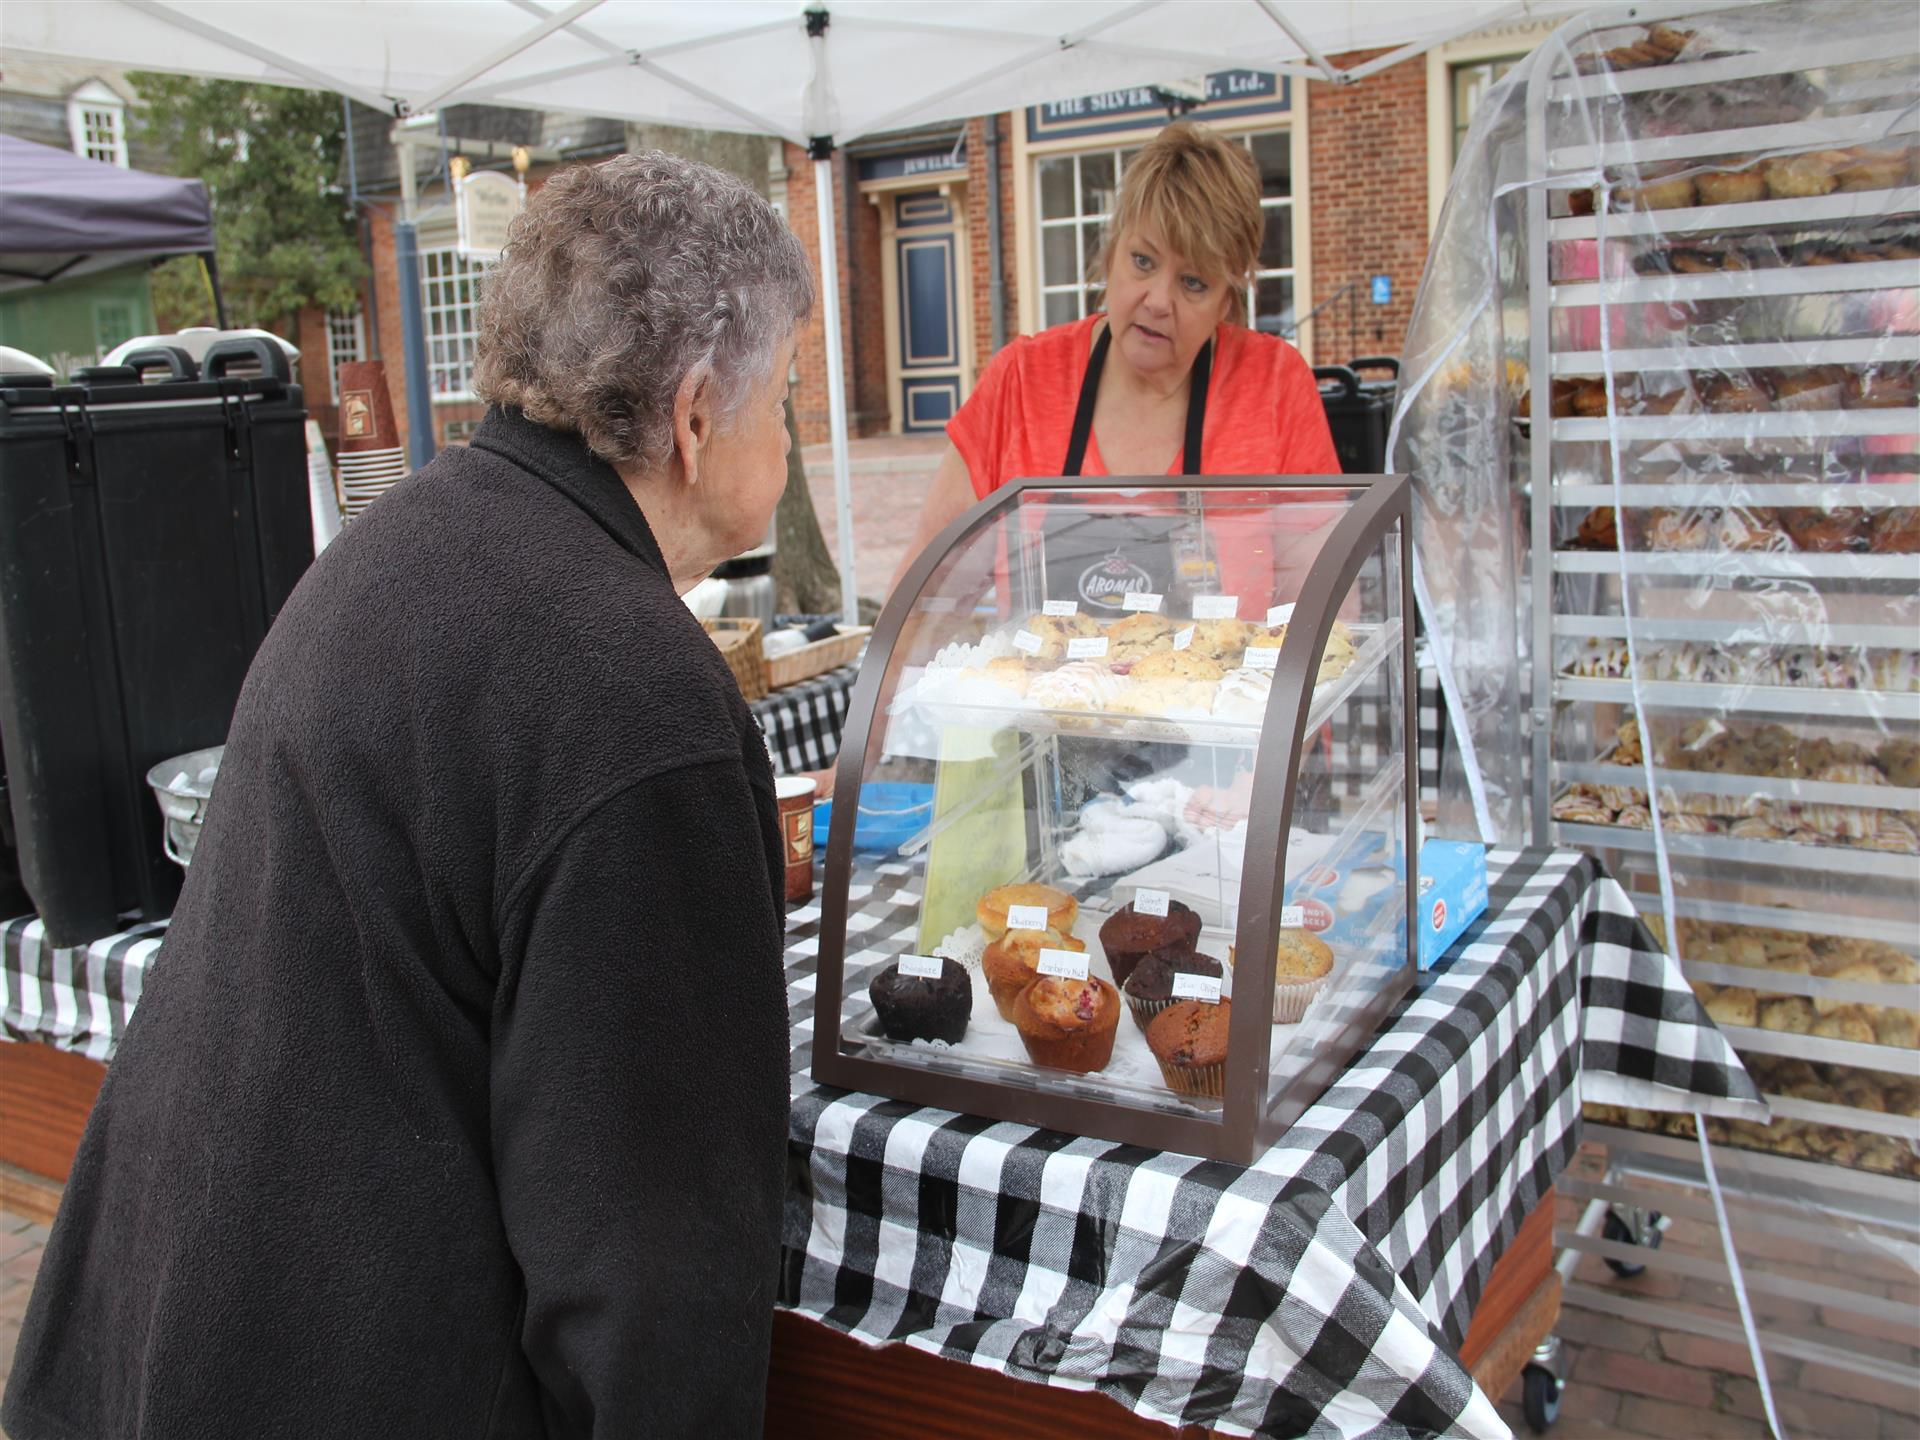 Woman looking at muffins at Aroma's outdoor stand at farmer's market.